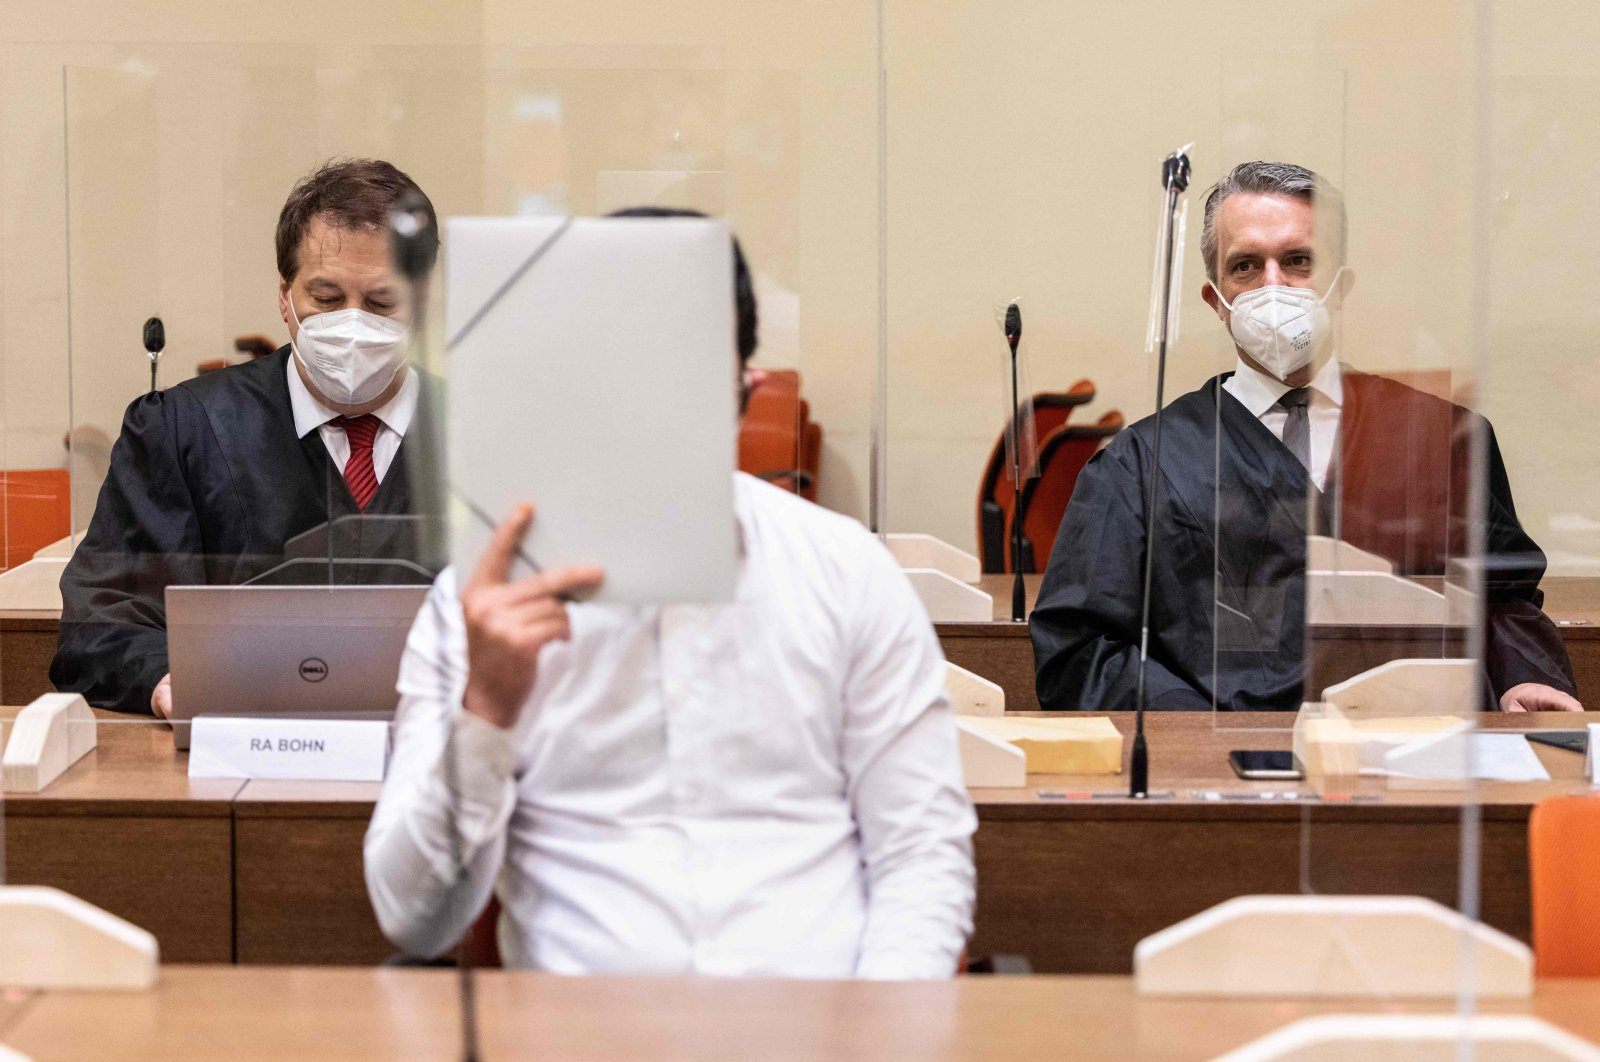 Defendant Muharrem D. (C) covers his face before the start of his trial, Munich, Germany, July 23, 2021. (AFP PHOTO)